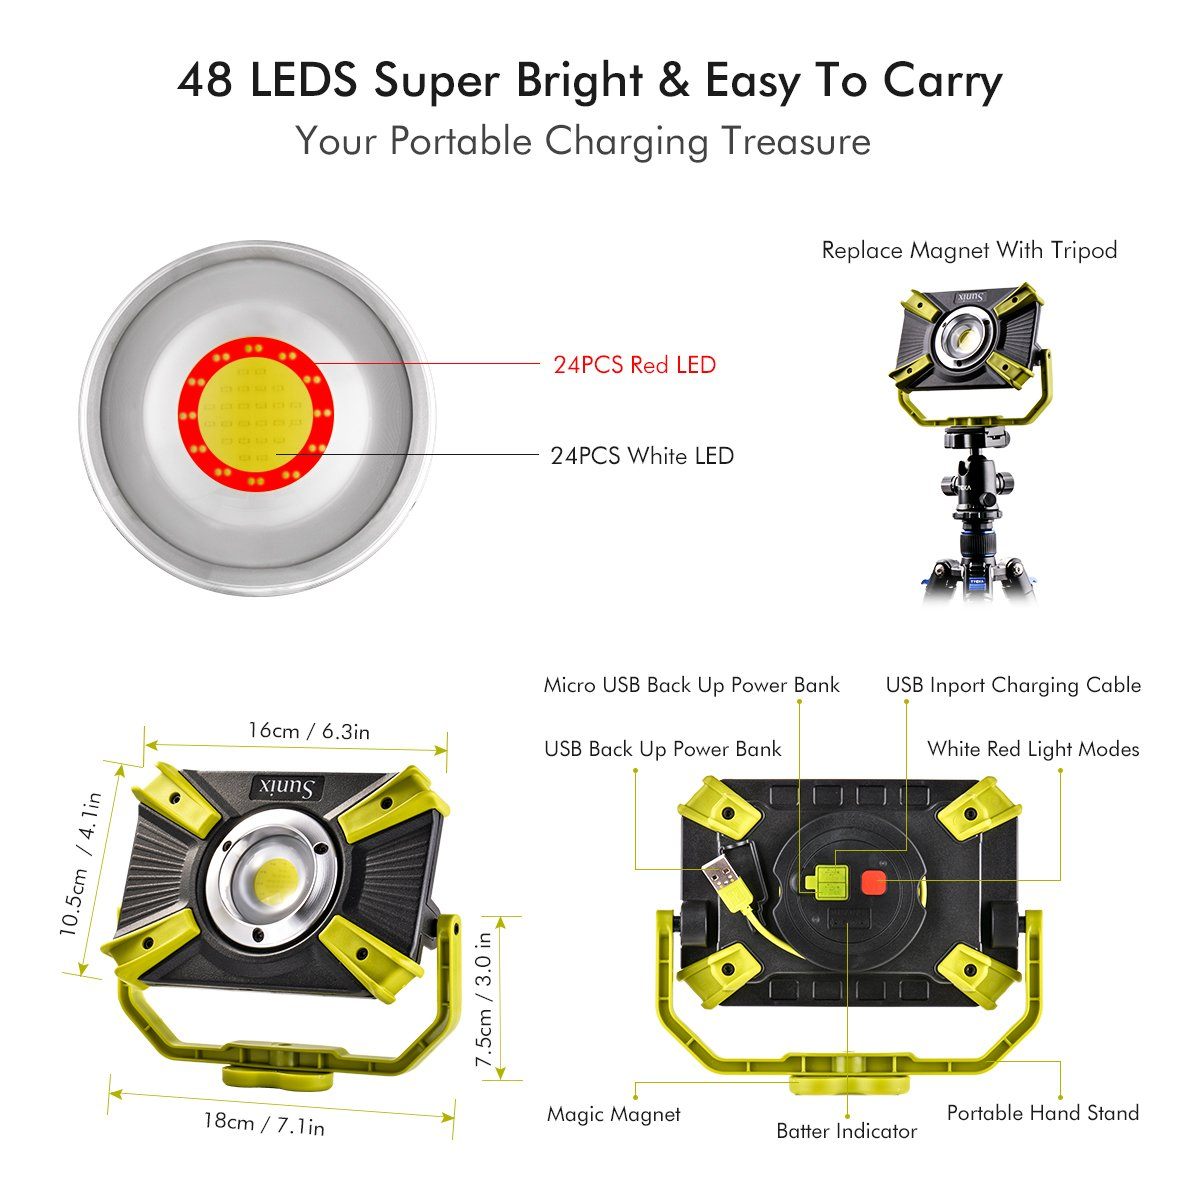 Rechargeable LED Work Light 20W 1600LM SOS Mode 2.1A Fast Charging Magnetic Base Waterproof Spotlights Outdoor Camping Emergency Floodlights For Truck Tractor Workshop Construction Site by XCSOURCE (Image #5)